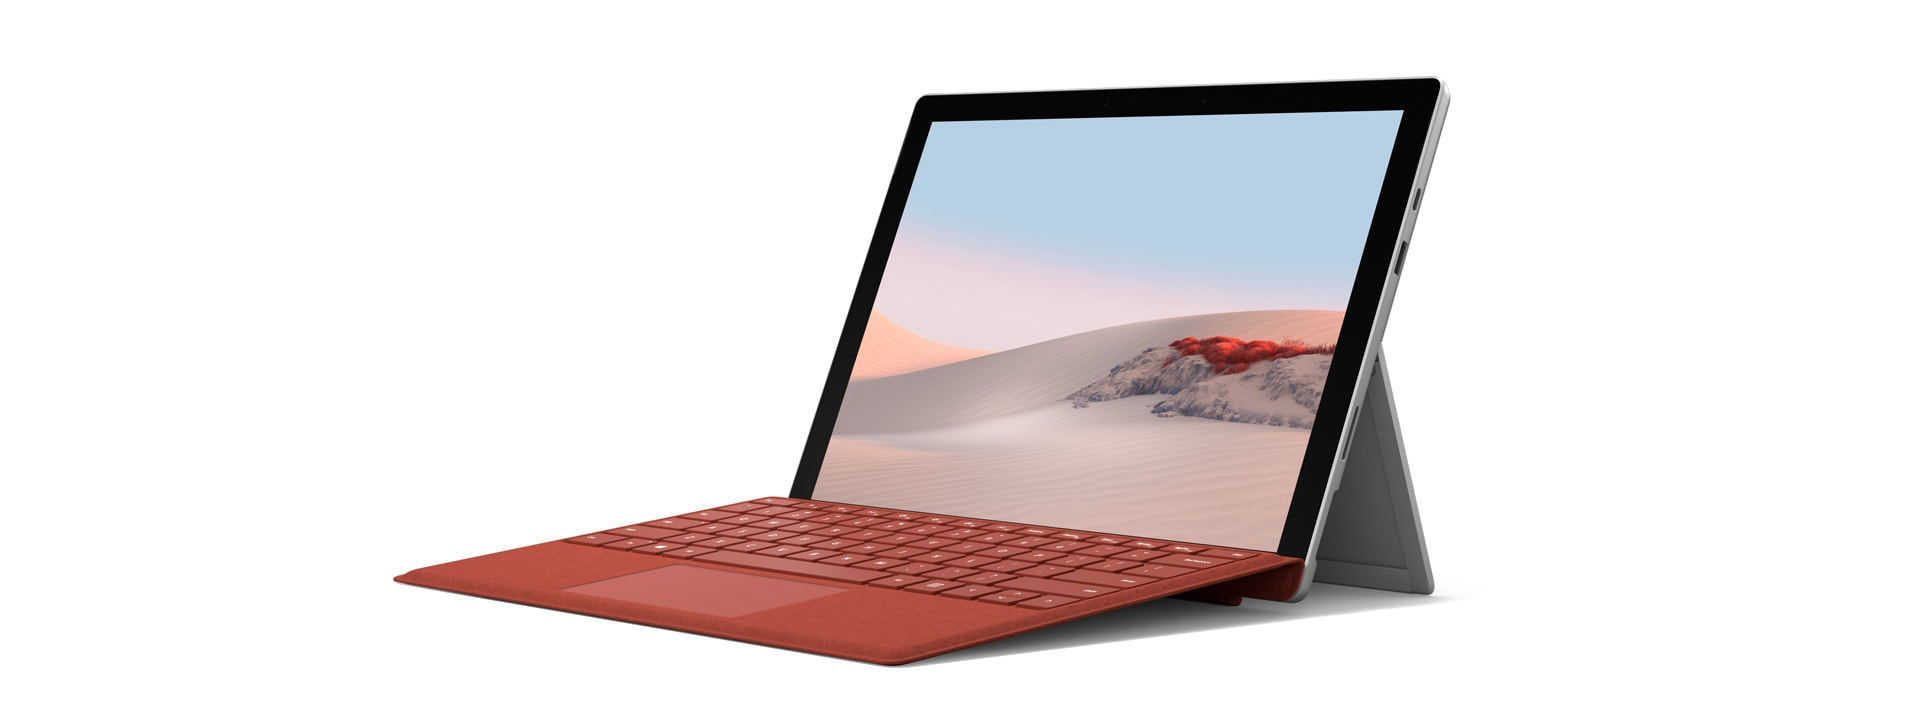 جهاز Surface Pro 7 مزود بلوحة مفاتيح Surface Type Cover بزاوية